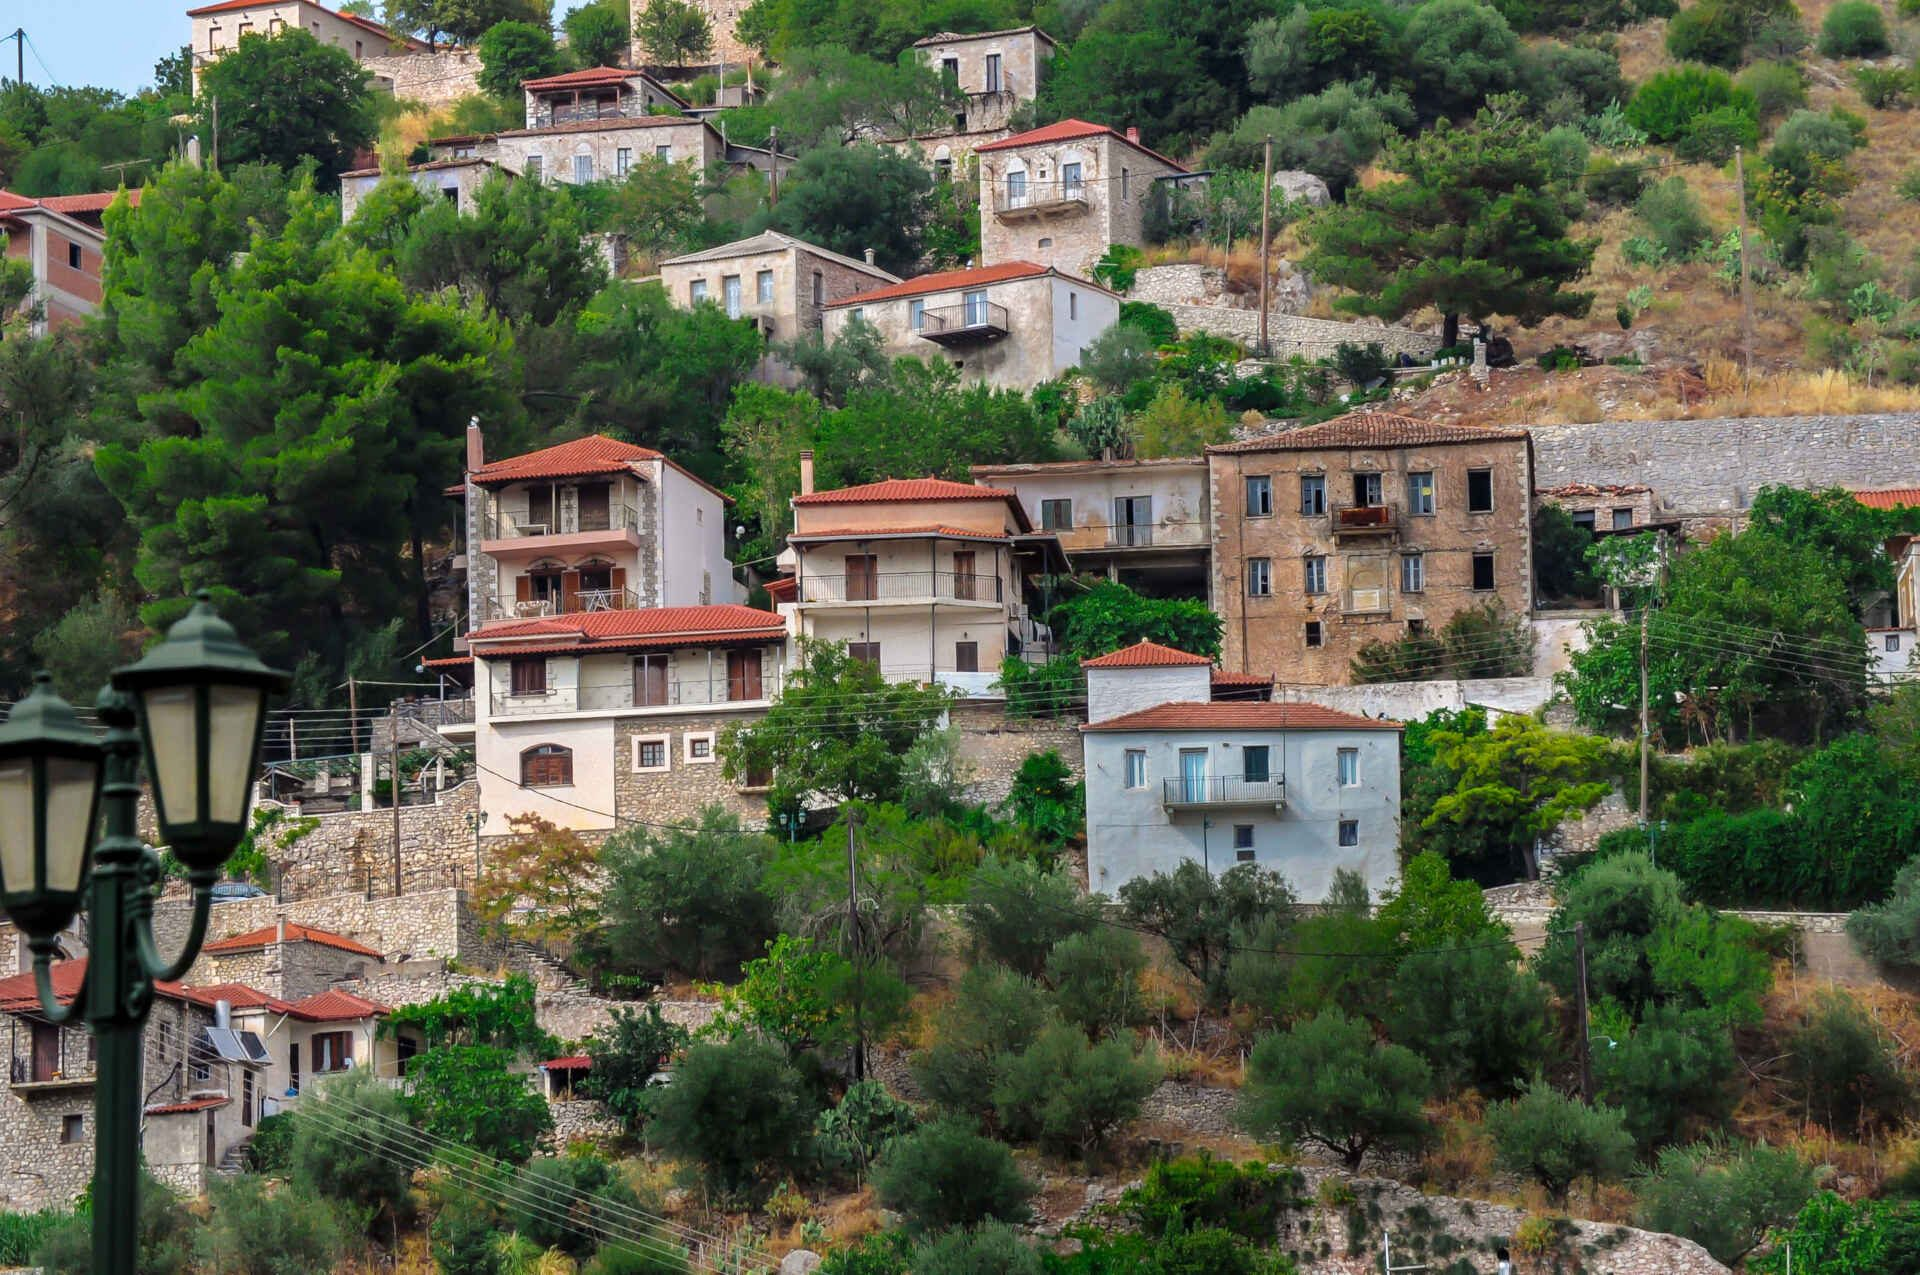 During our Road Trip Peloponnese we visited the village of Karytaina in Arcadia.